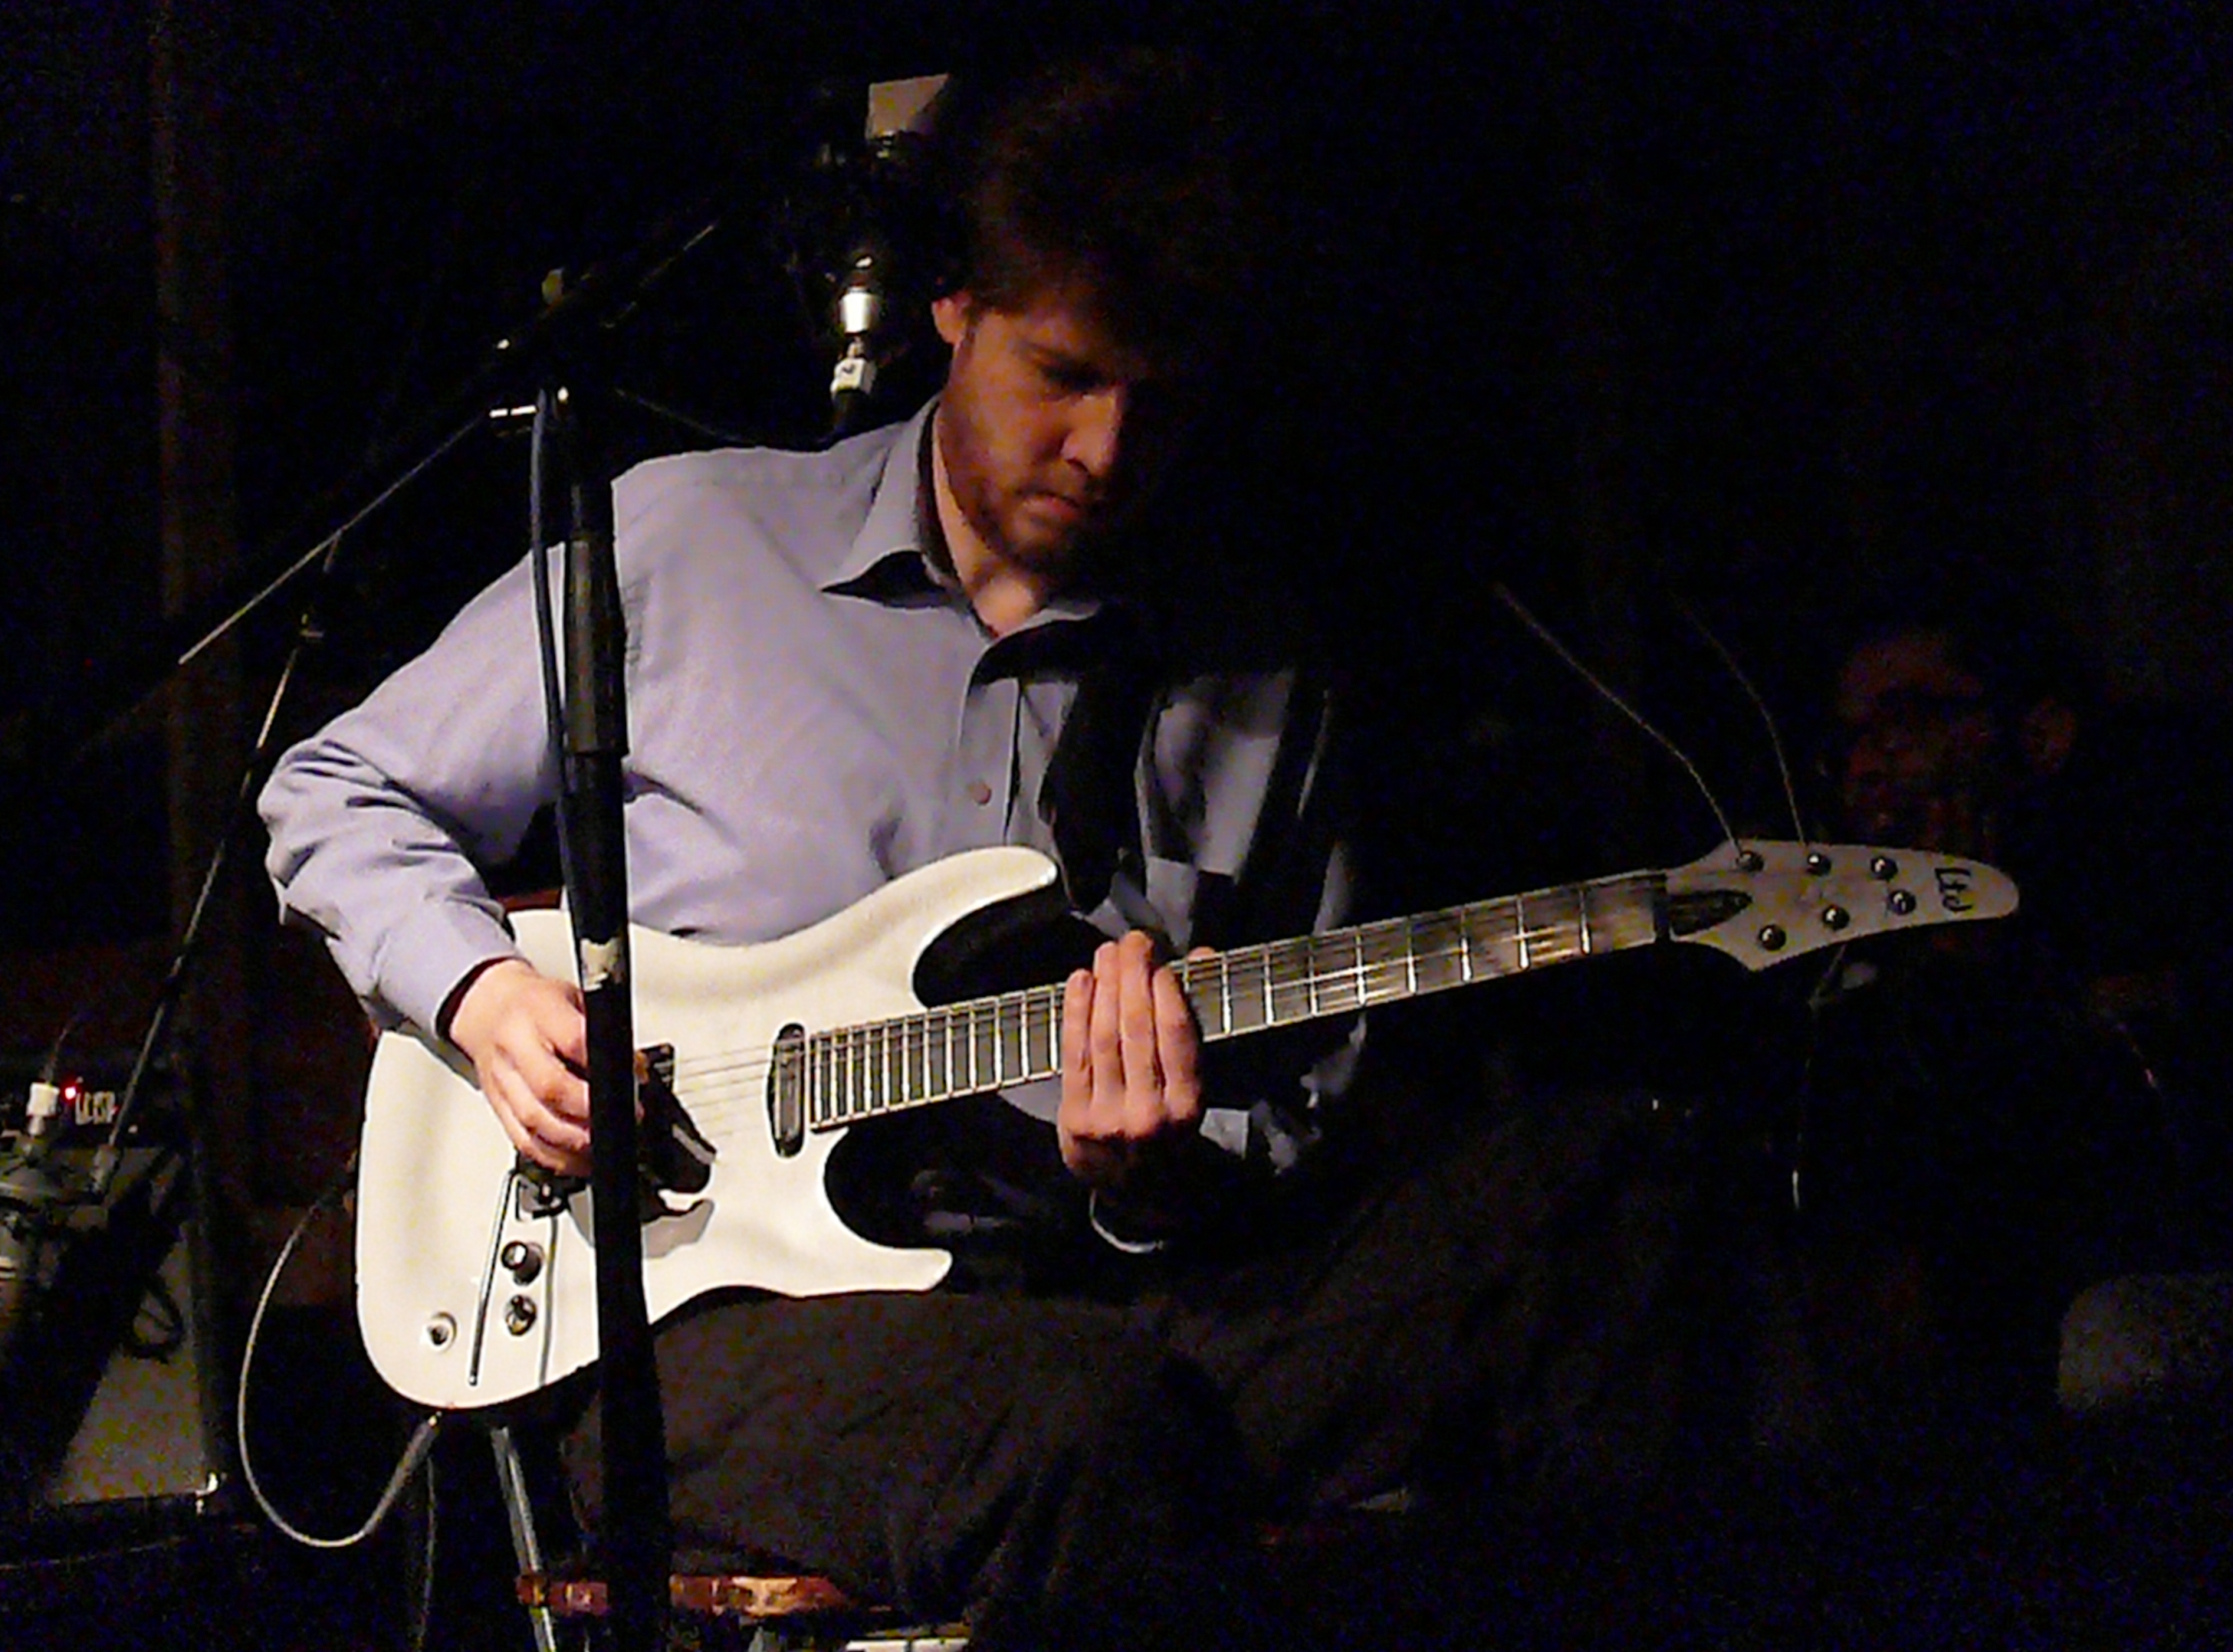 Alex ward at cafe oto, london in february 2013